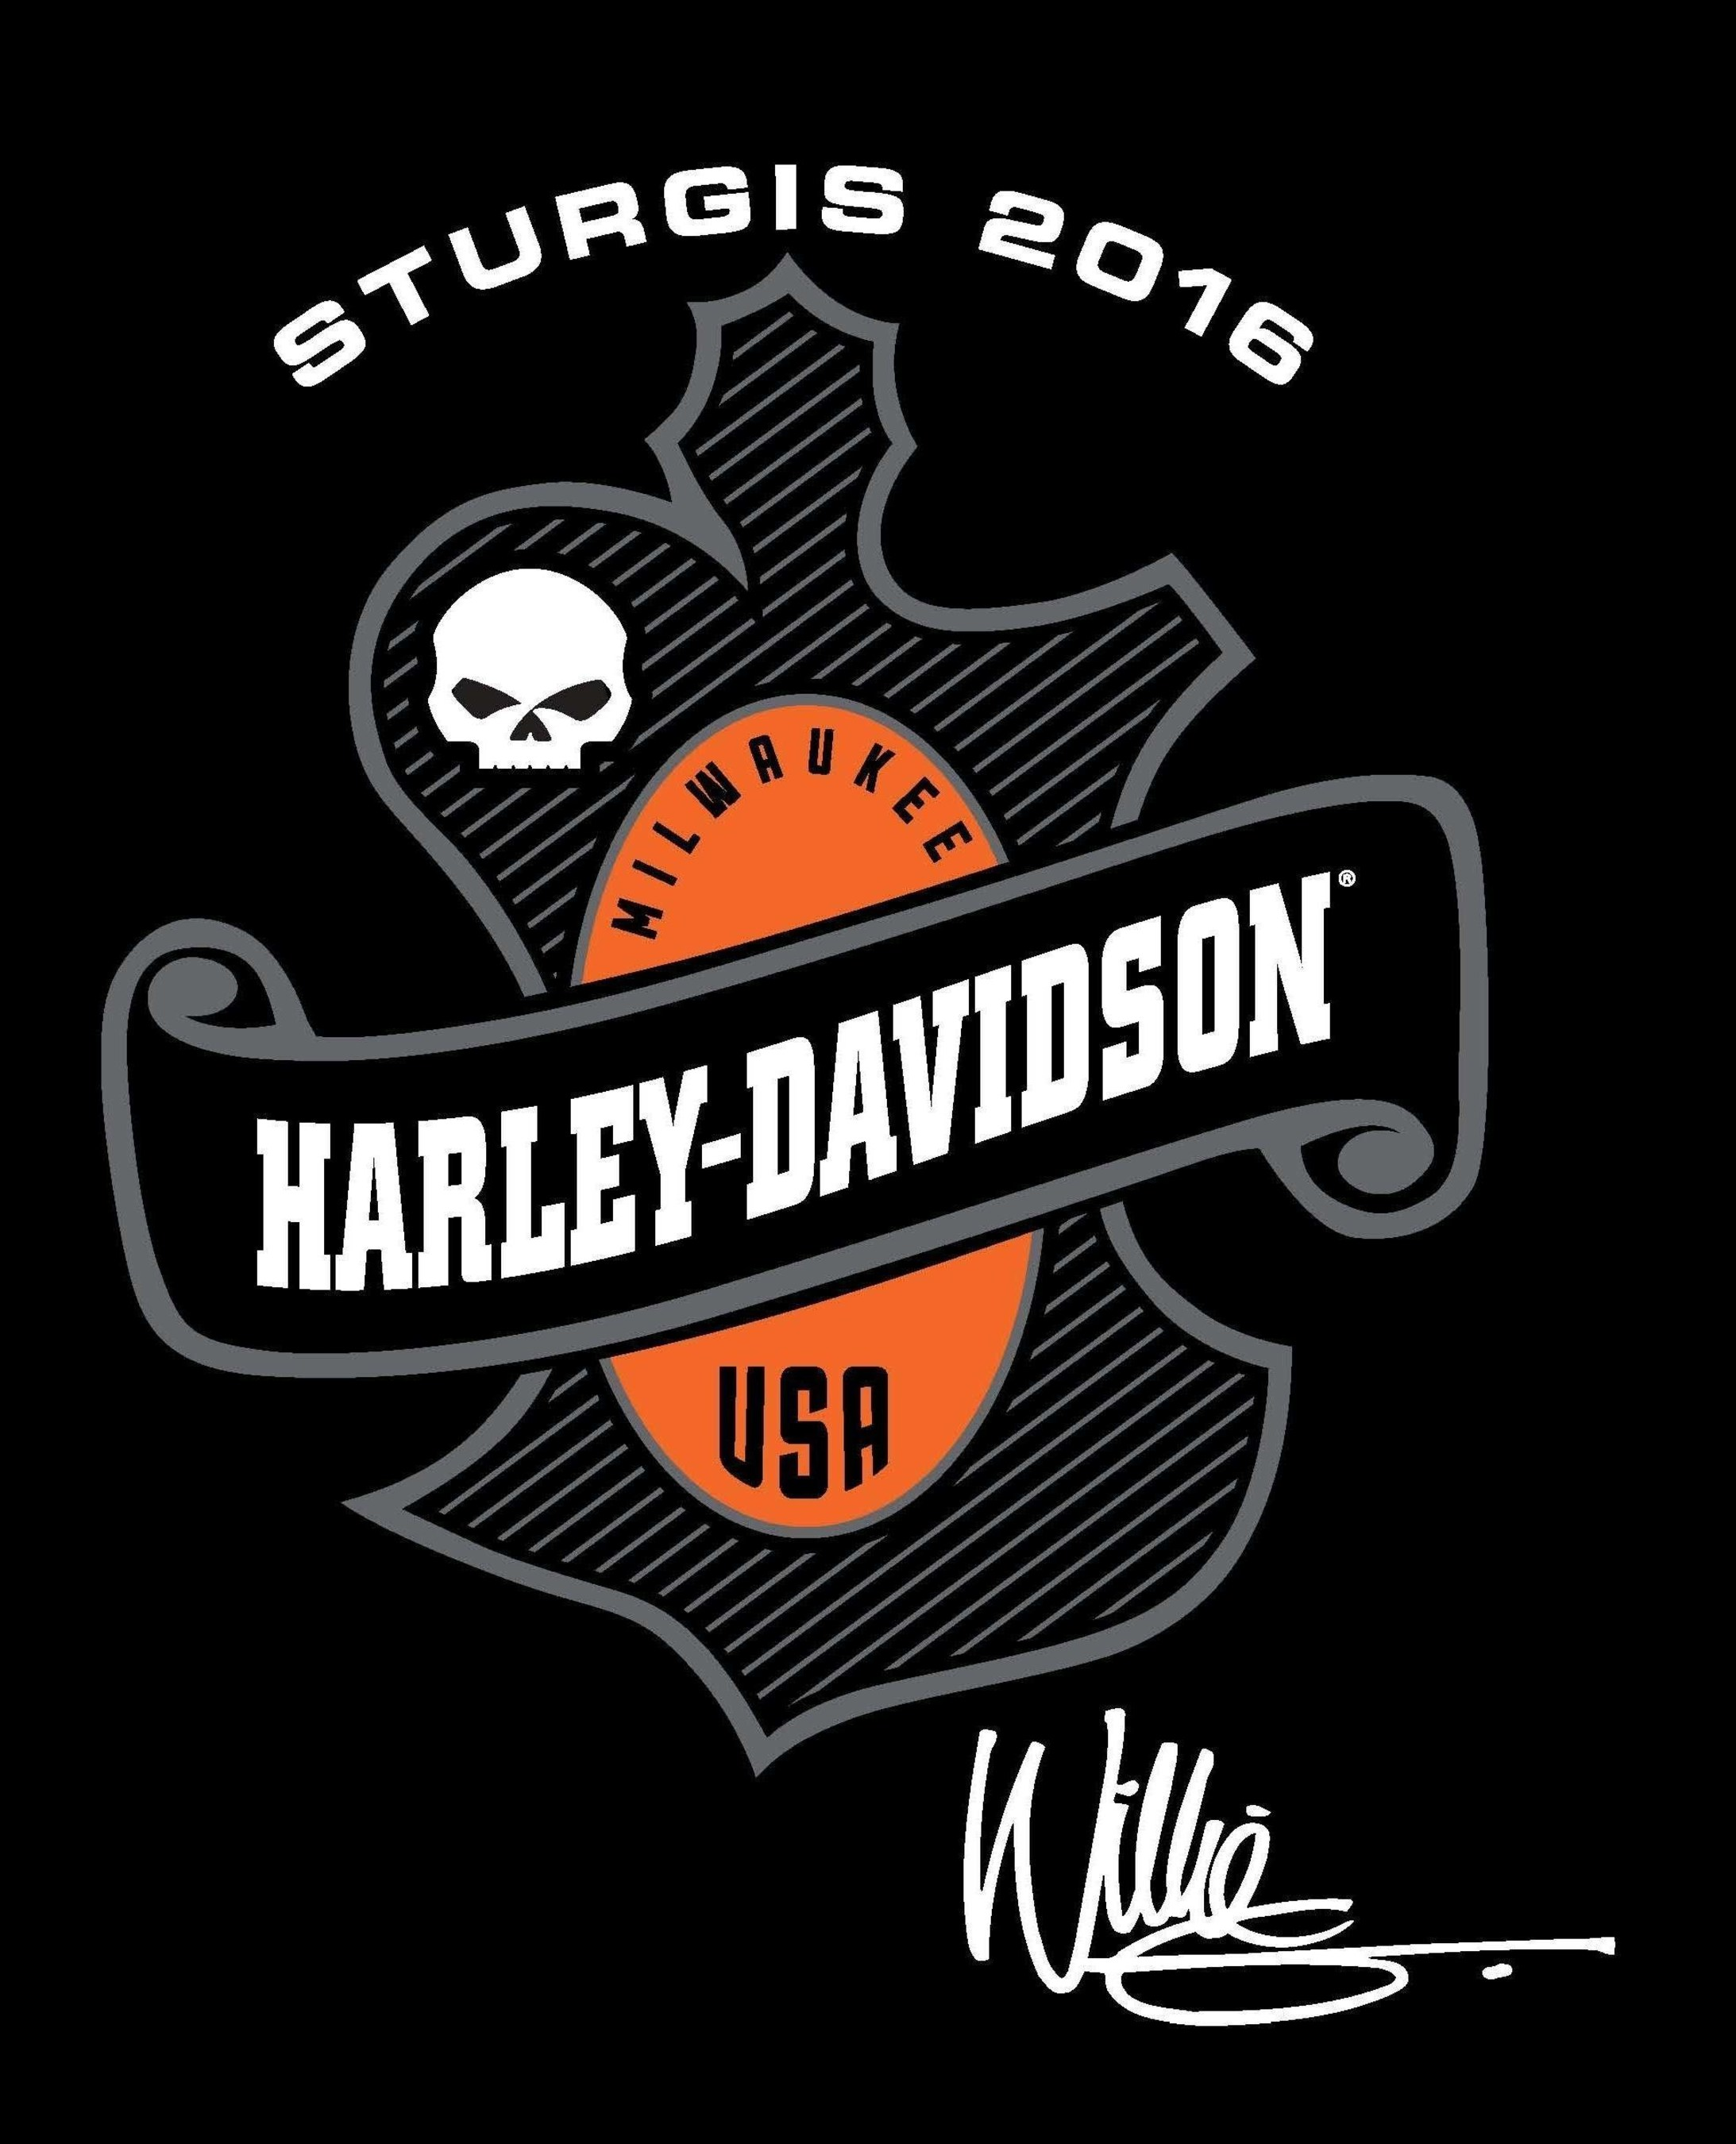 ed10f6eb Harley-Davidson will roll into the historic South Dakota Black Hills region  with activities planned